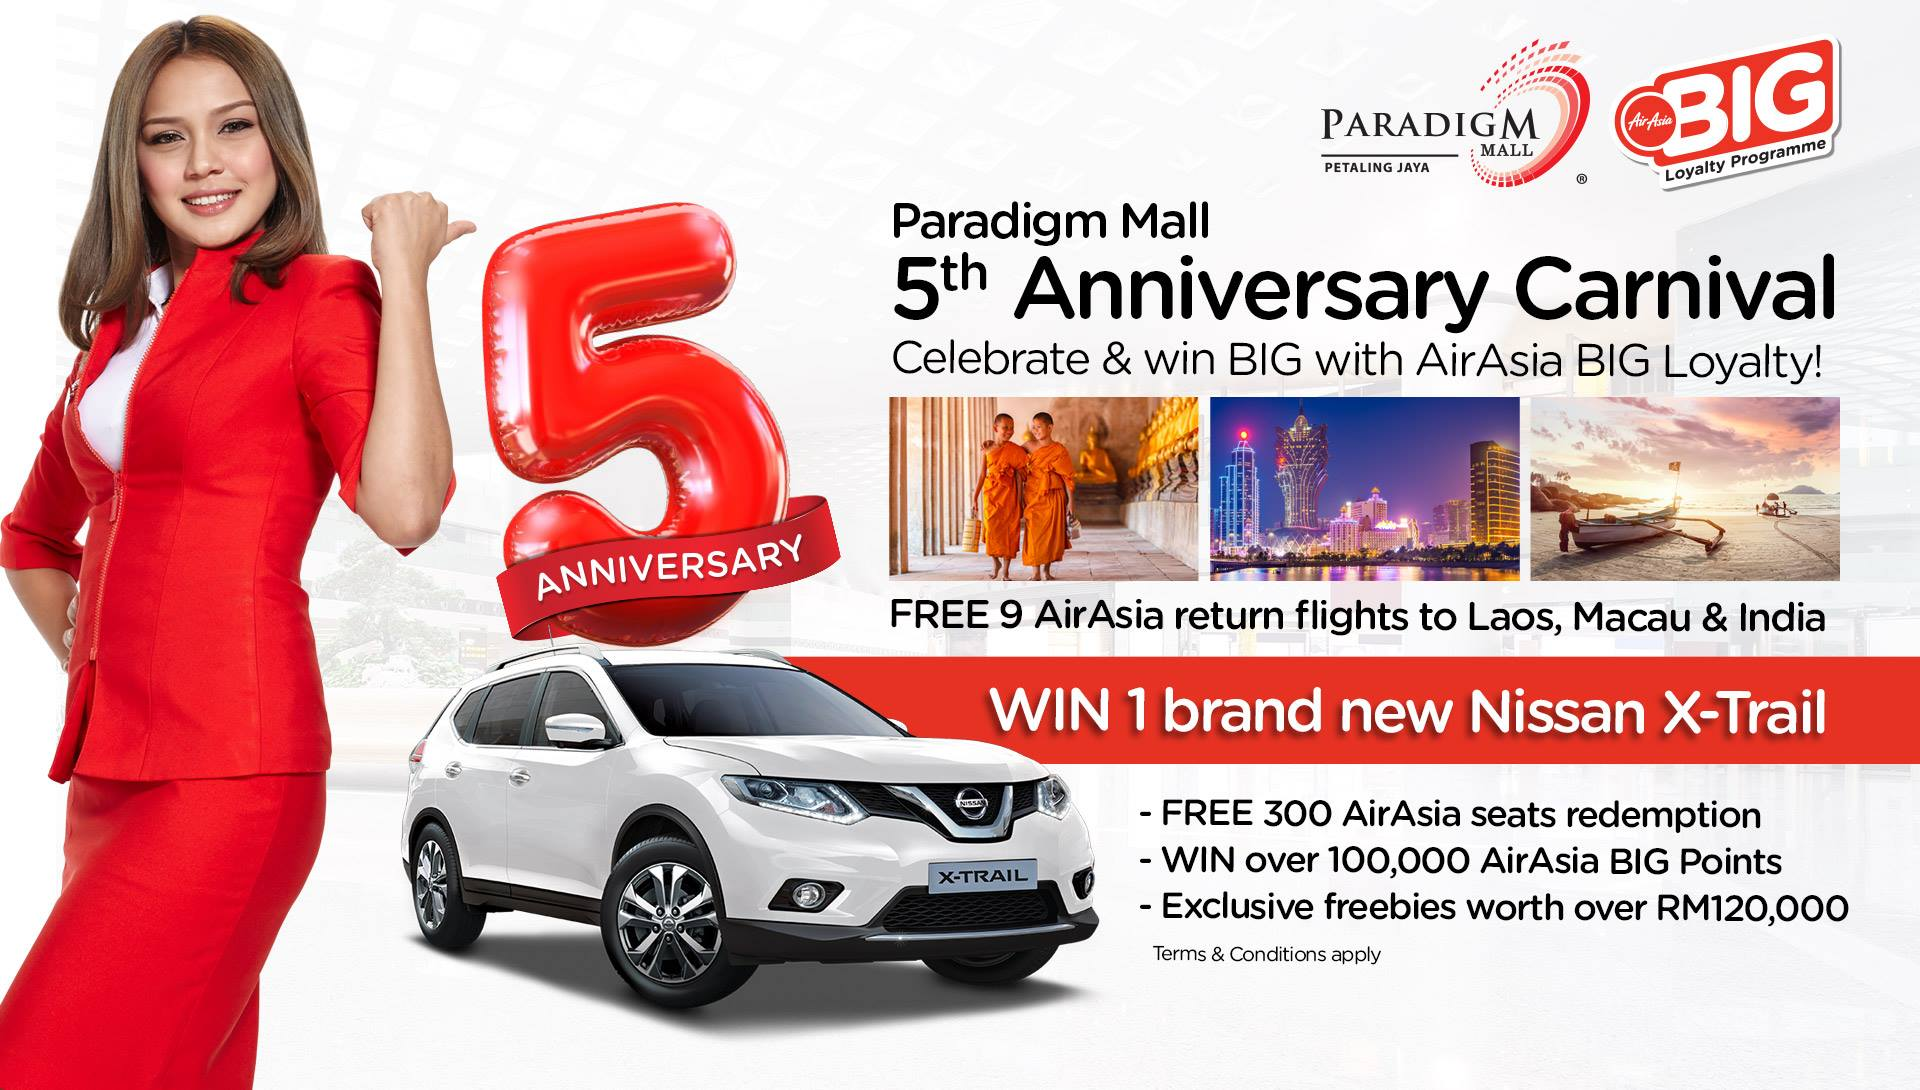 Win AirAsia Flights & Nissan X-Trail at Paradigm Mall 5th Anniversary Carnival